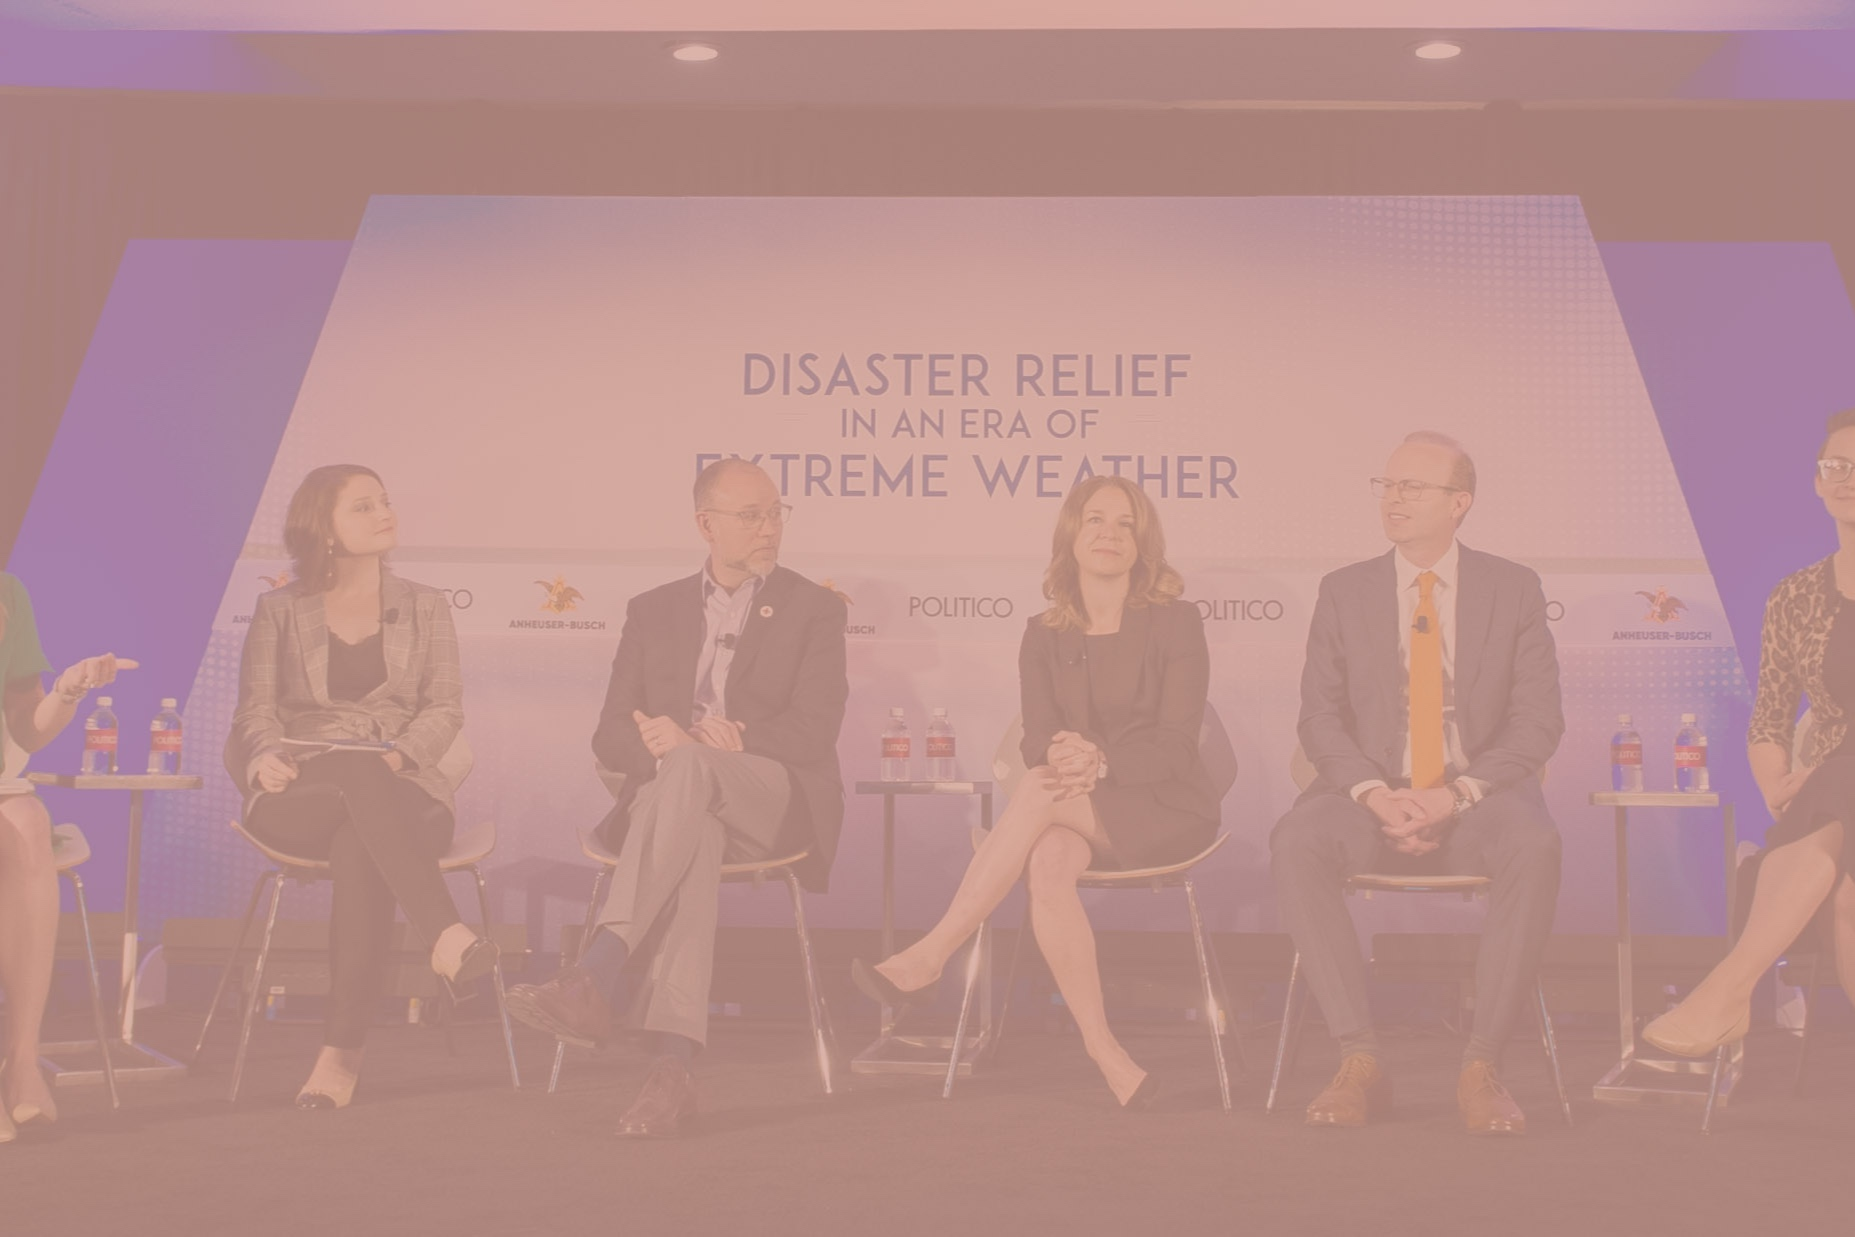 Disaster Relief in an Era of Extreme Weather -